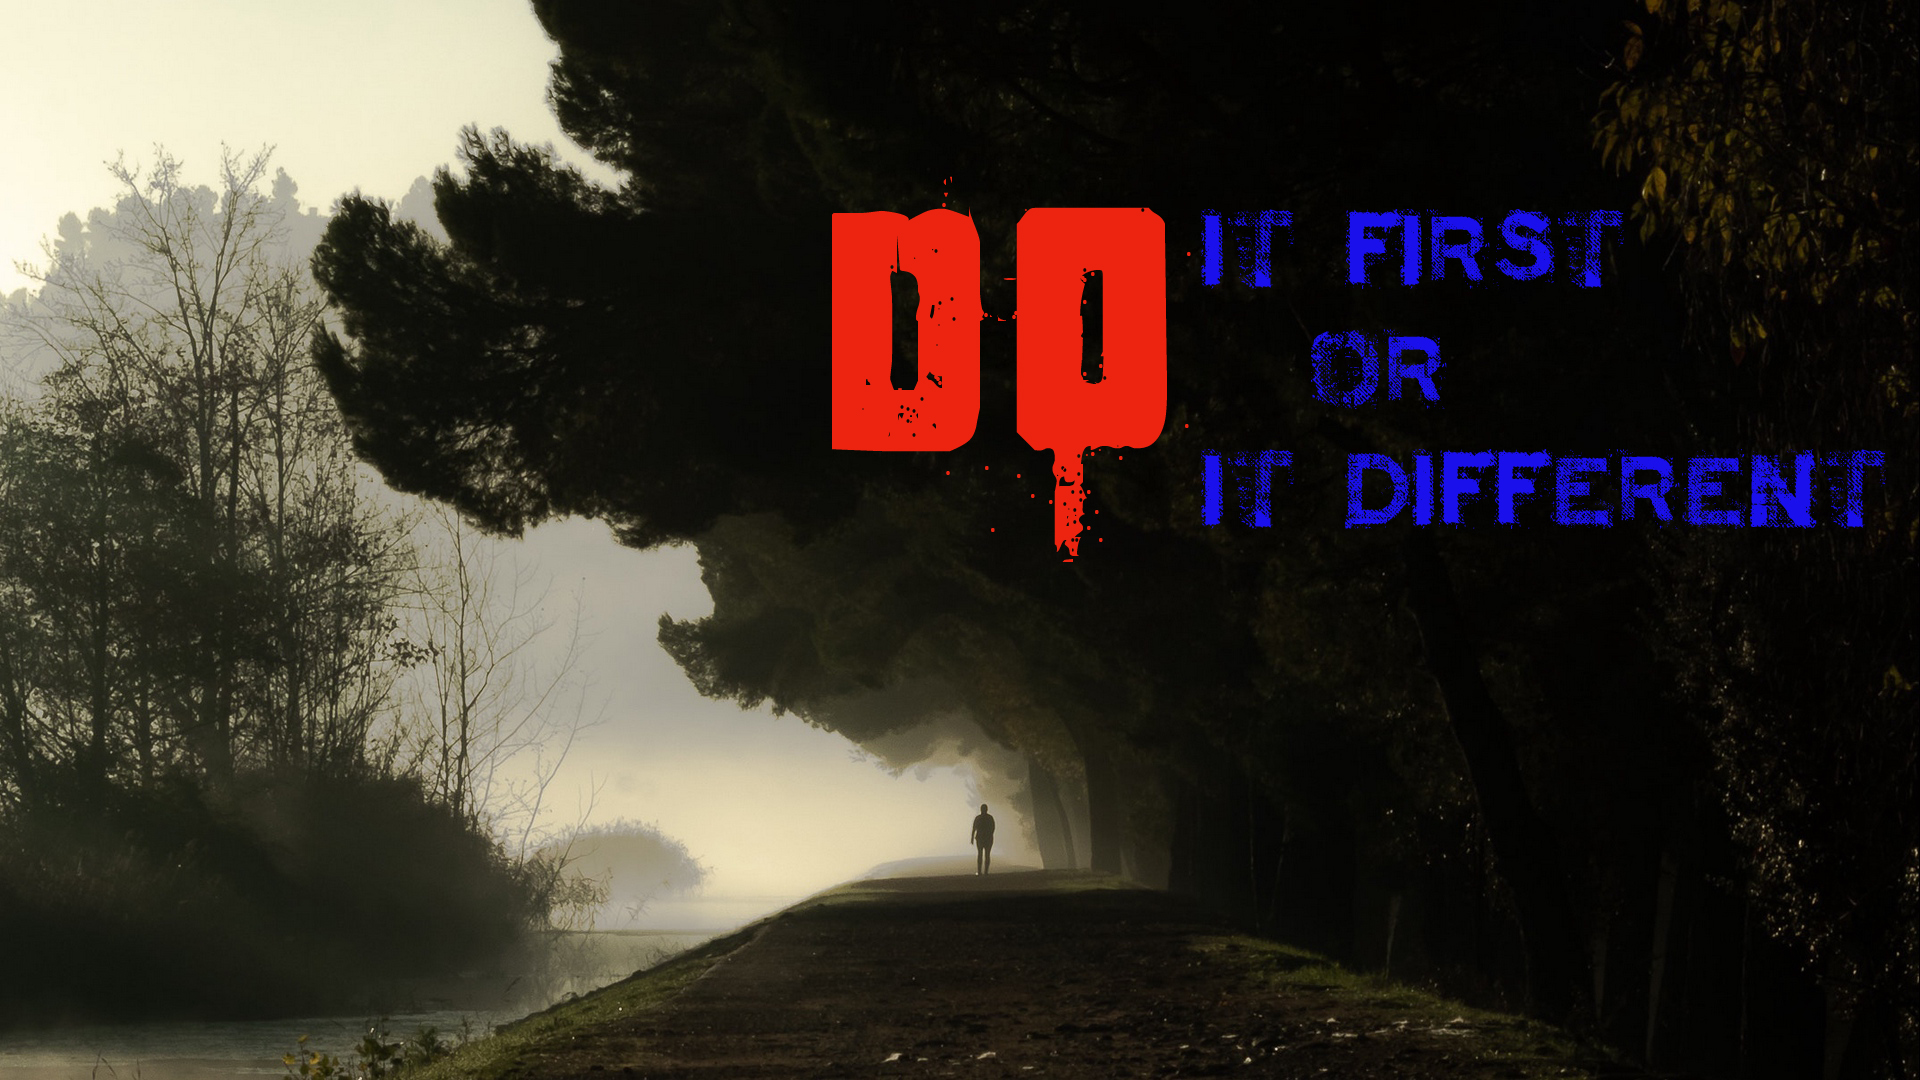 Motivational Quotes Full HD Wallpapers - Do It First or Do It Different